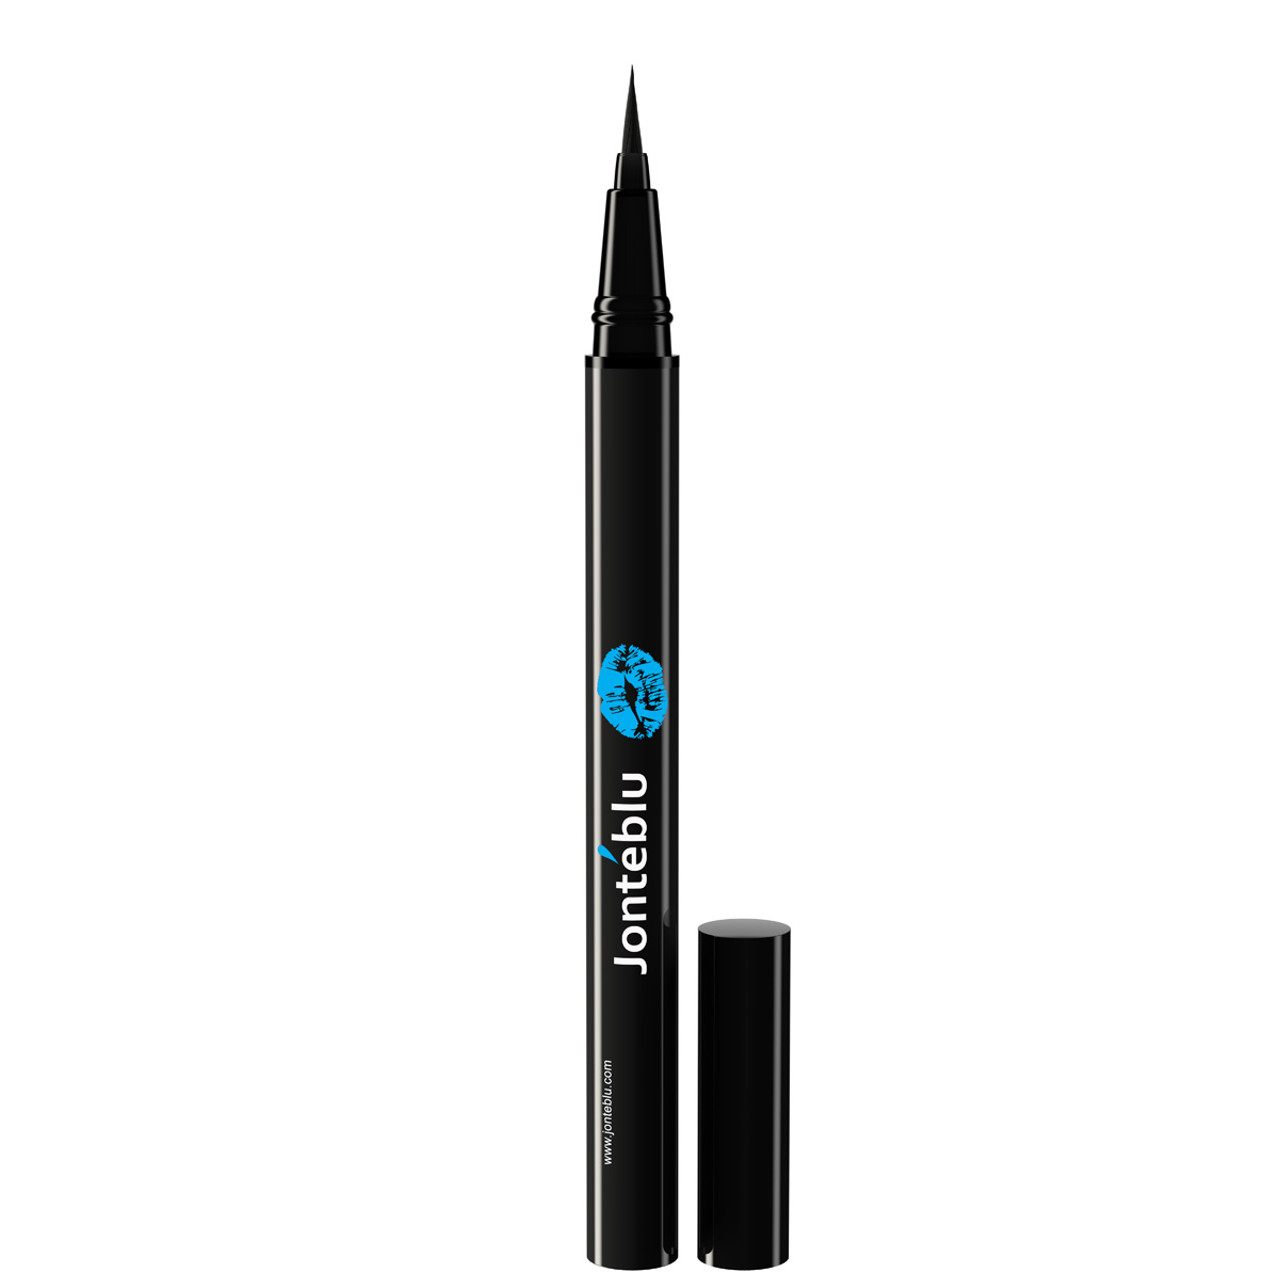 liquid eyeliner brush. jonteblu brush tip liquid eyeliner u